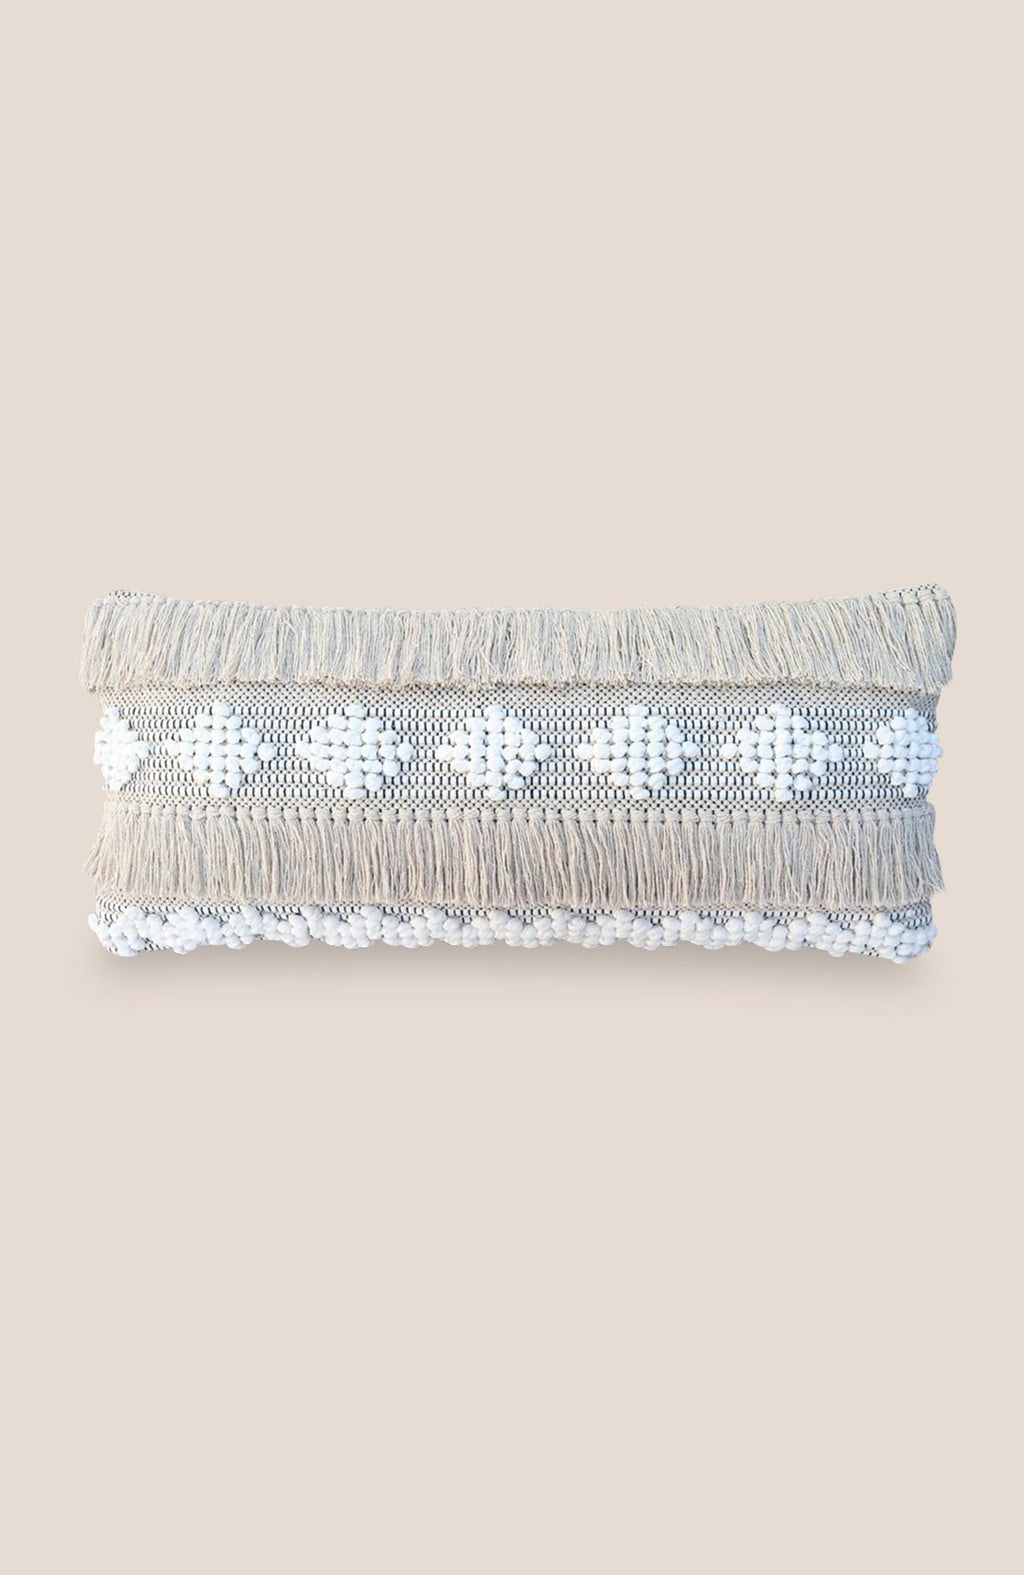 Pillow Cover Ember (rectangular) - Home Decor | Shop Baskets, Ceramics, Pillows, Rugs & Wall Hangs online